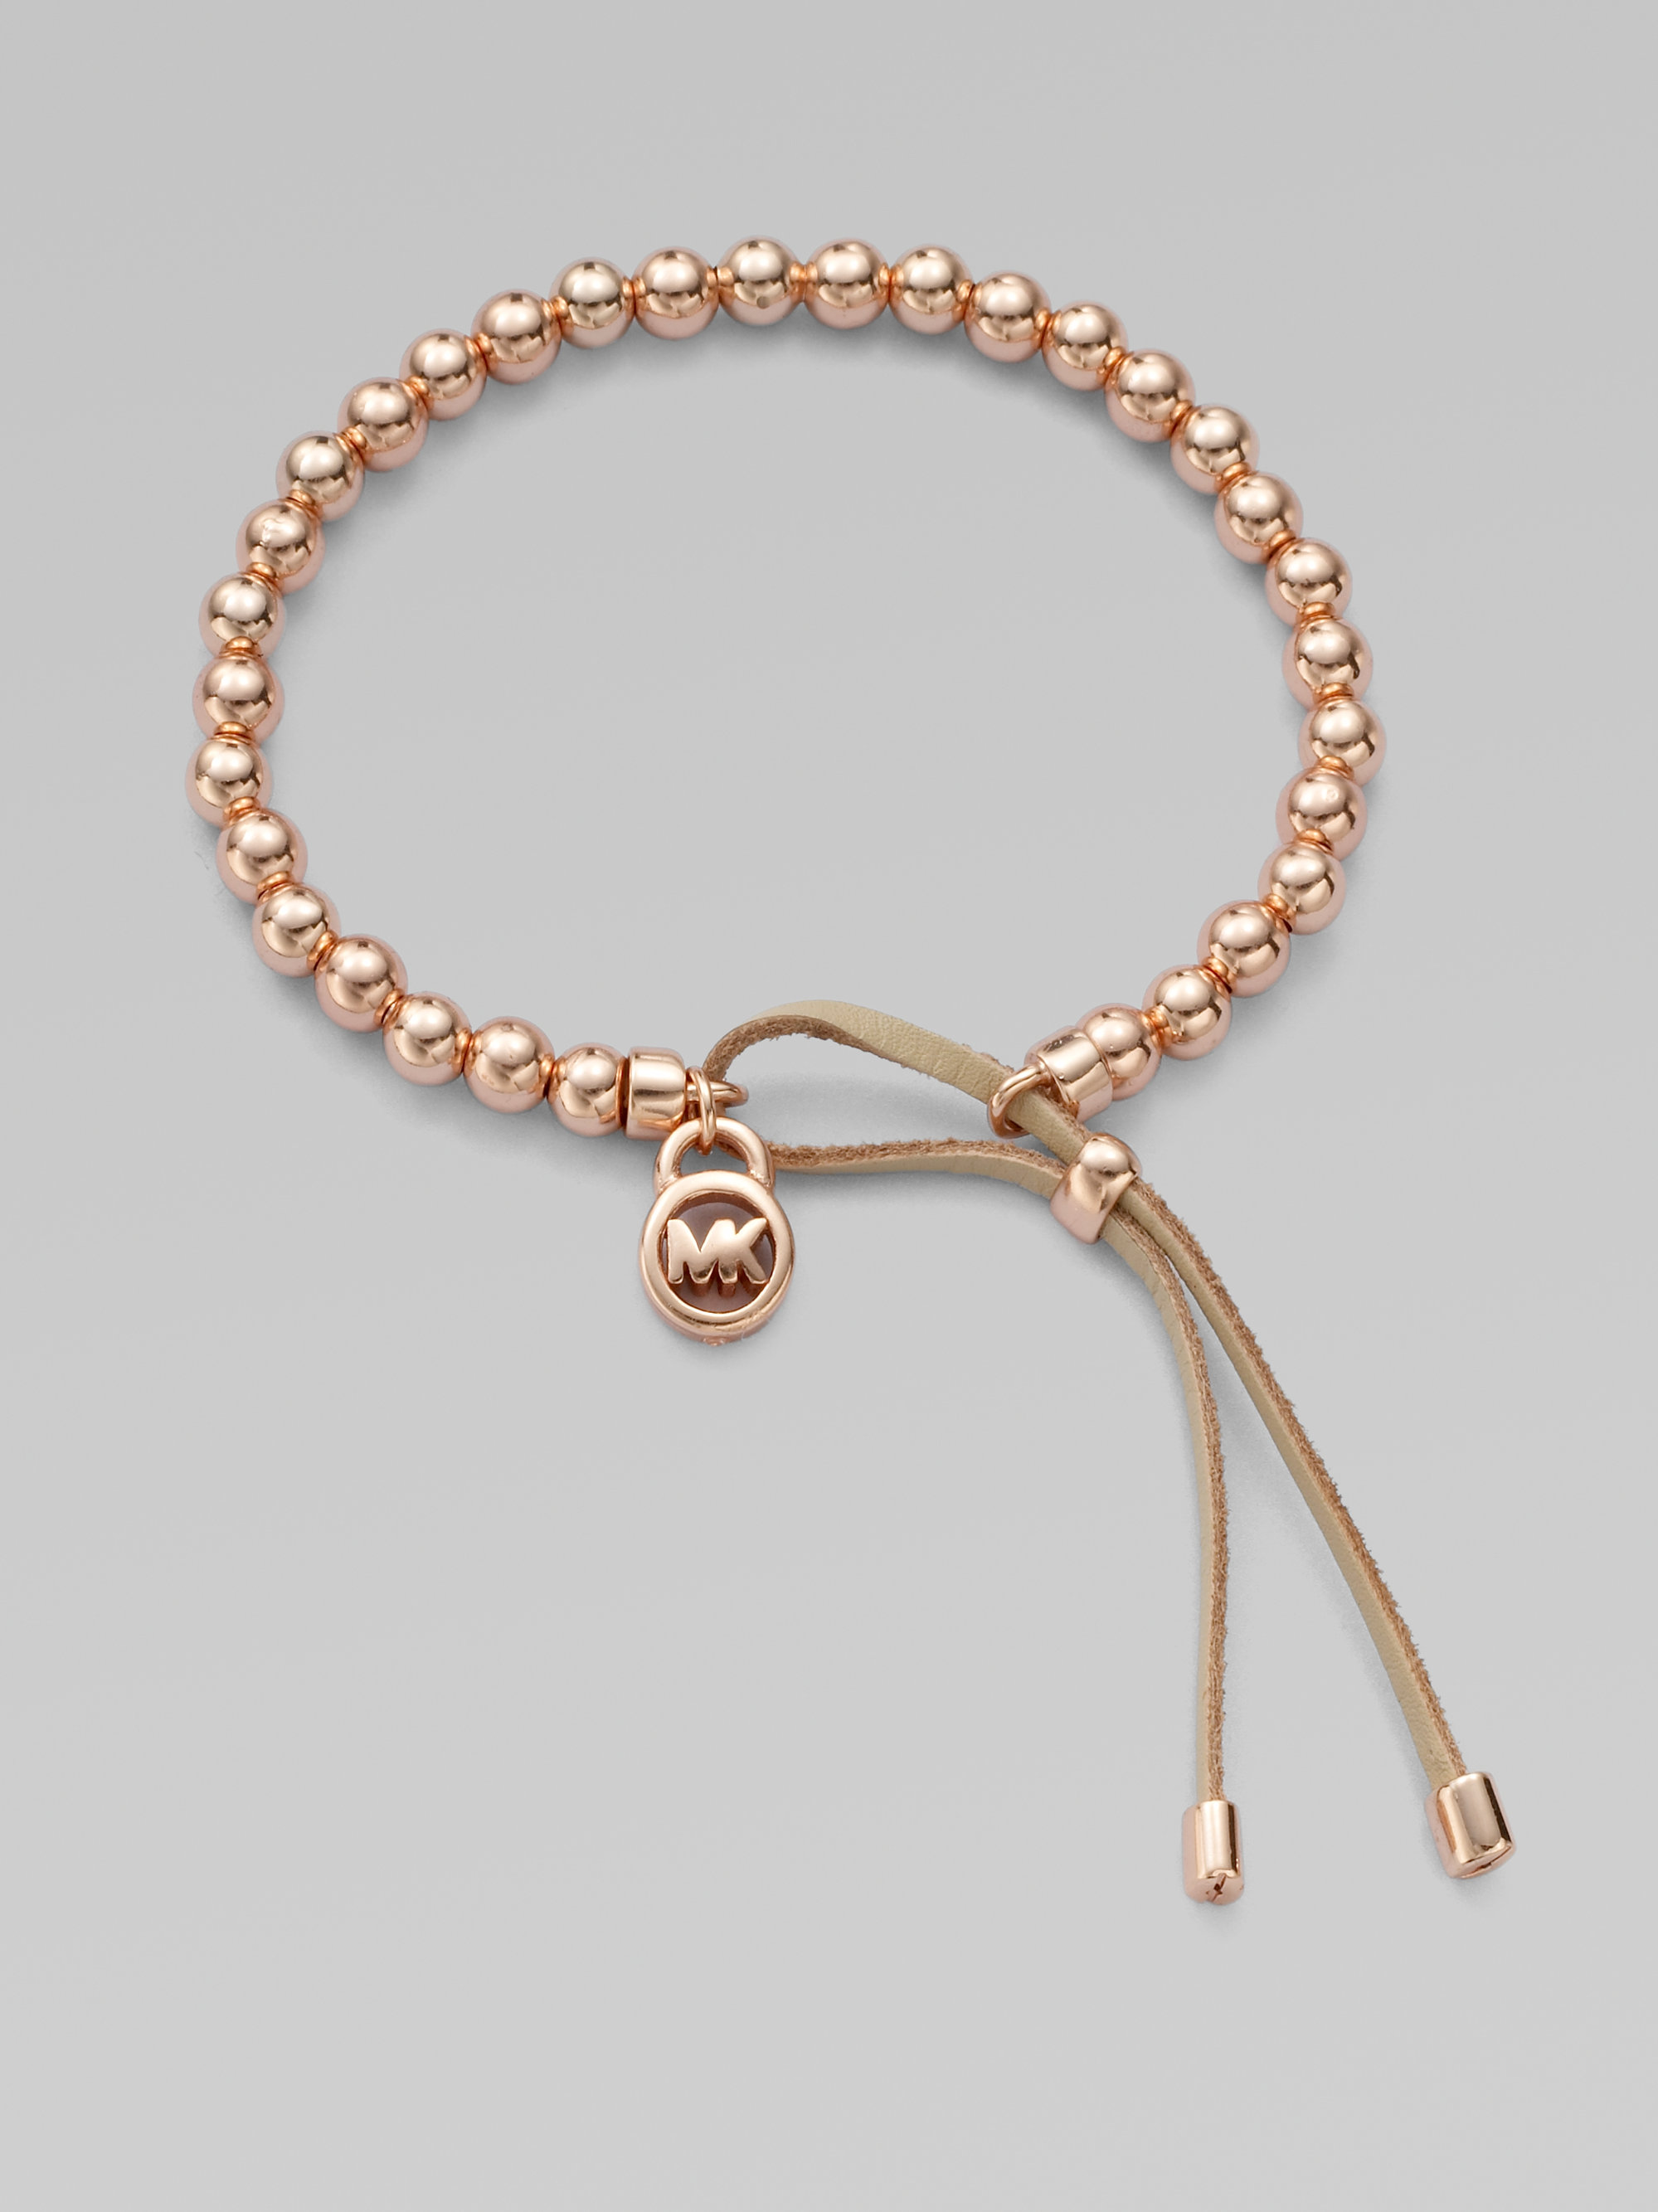 abfc5fad2b2f Lyst - Michael Kors Leather Accented Beaded Bracelet rose Goldtone ...